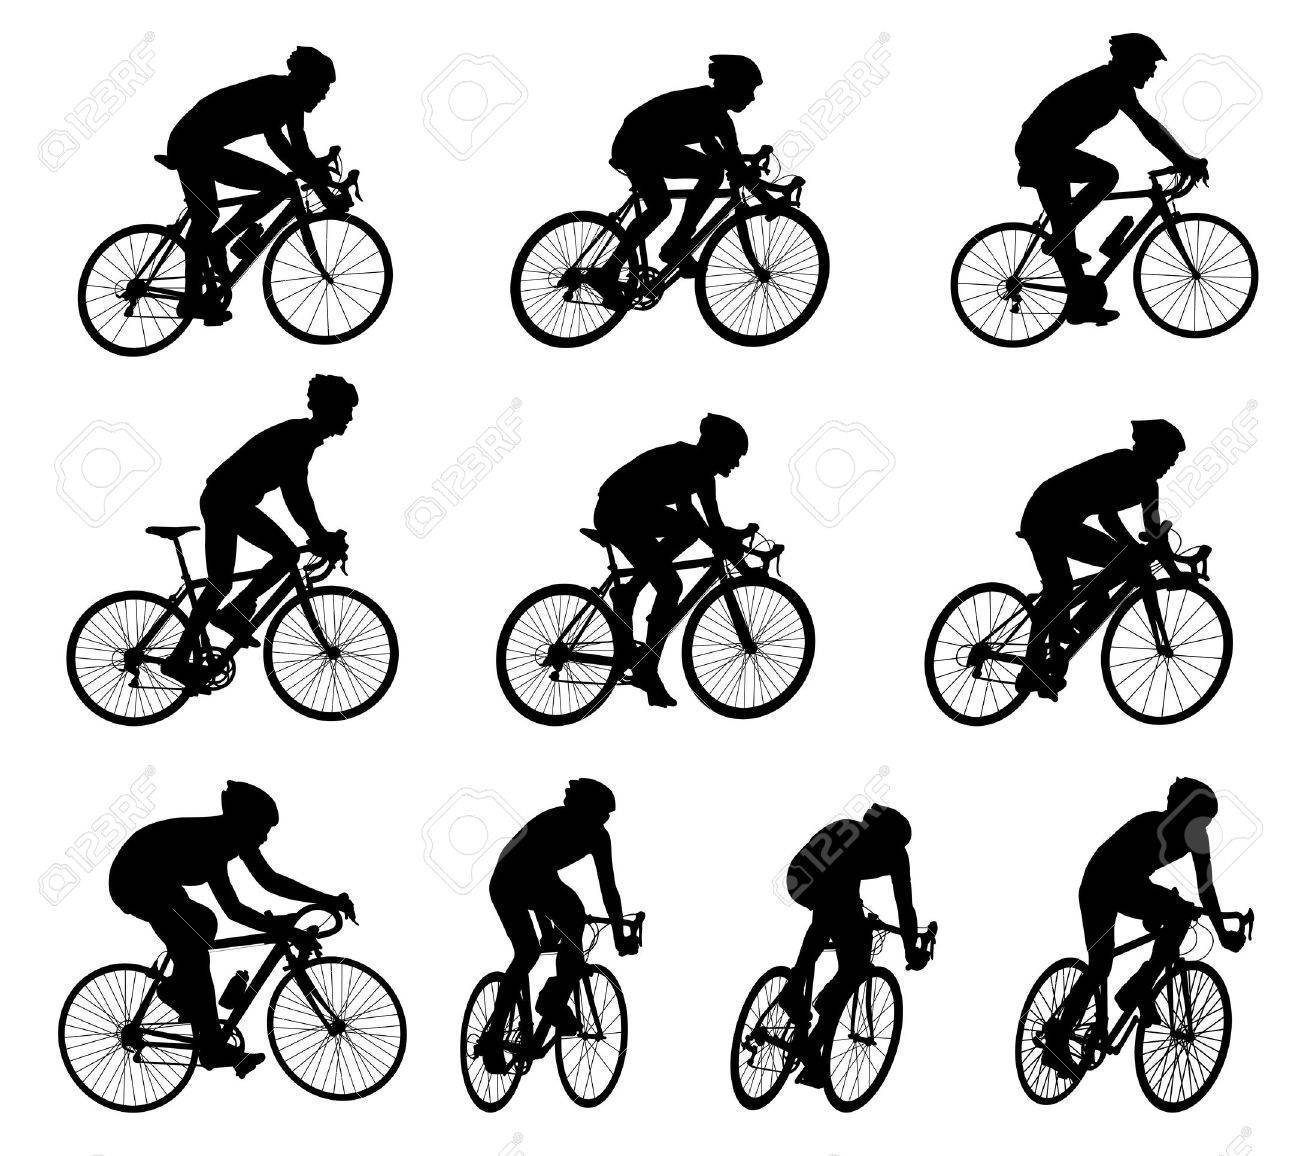 10 high quality race bicyclists silhouettes - 24161712